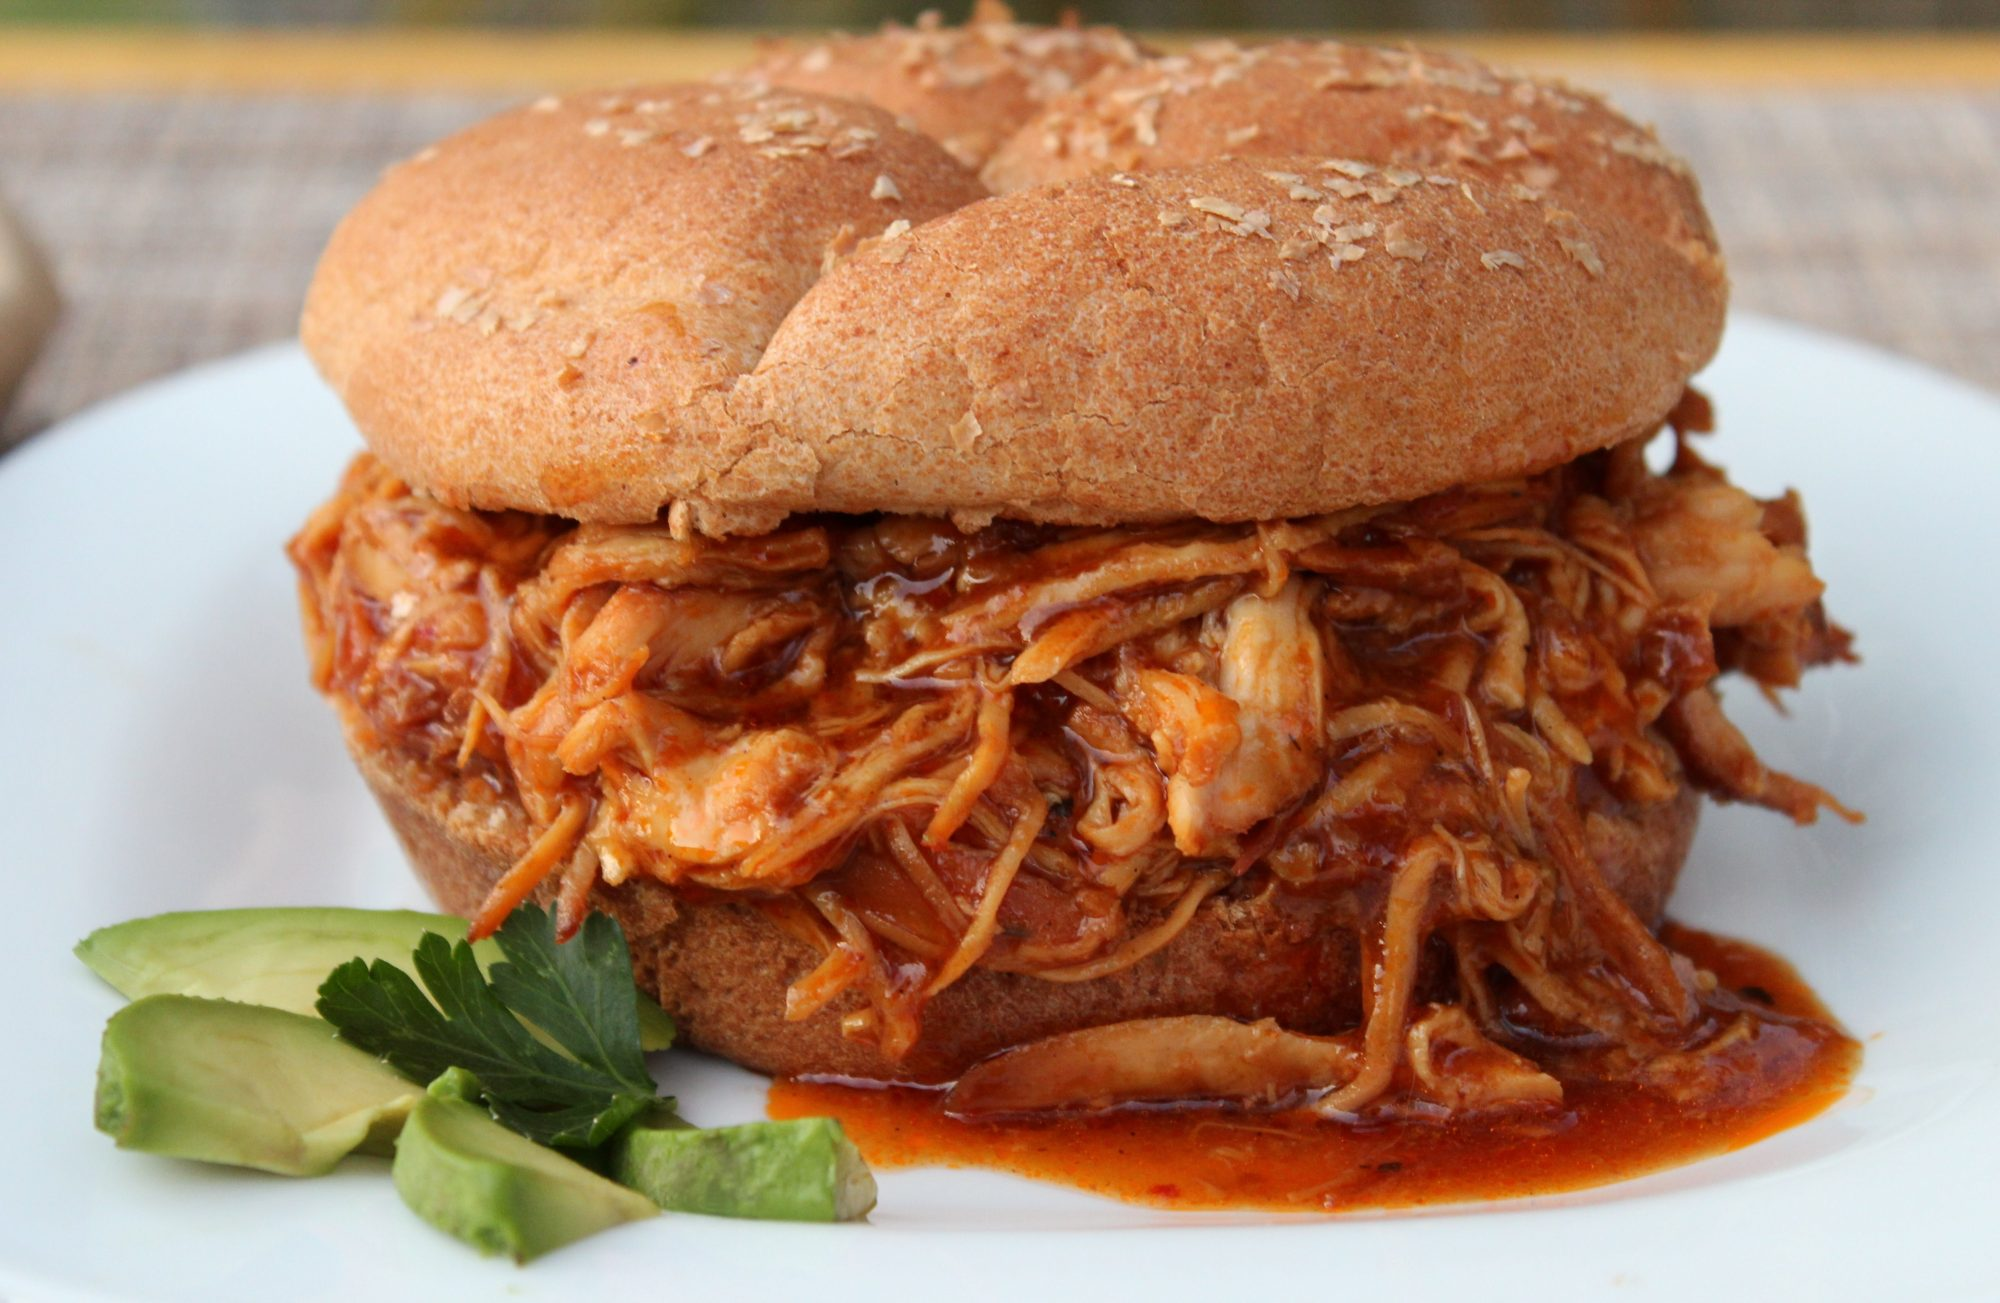 879977_Zesty-Slow-Cooker-Chicken-Barbecue_Photo-by-Creative-Side-Of-Me.jpg